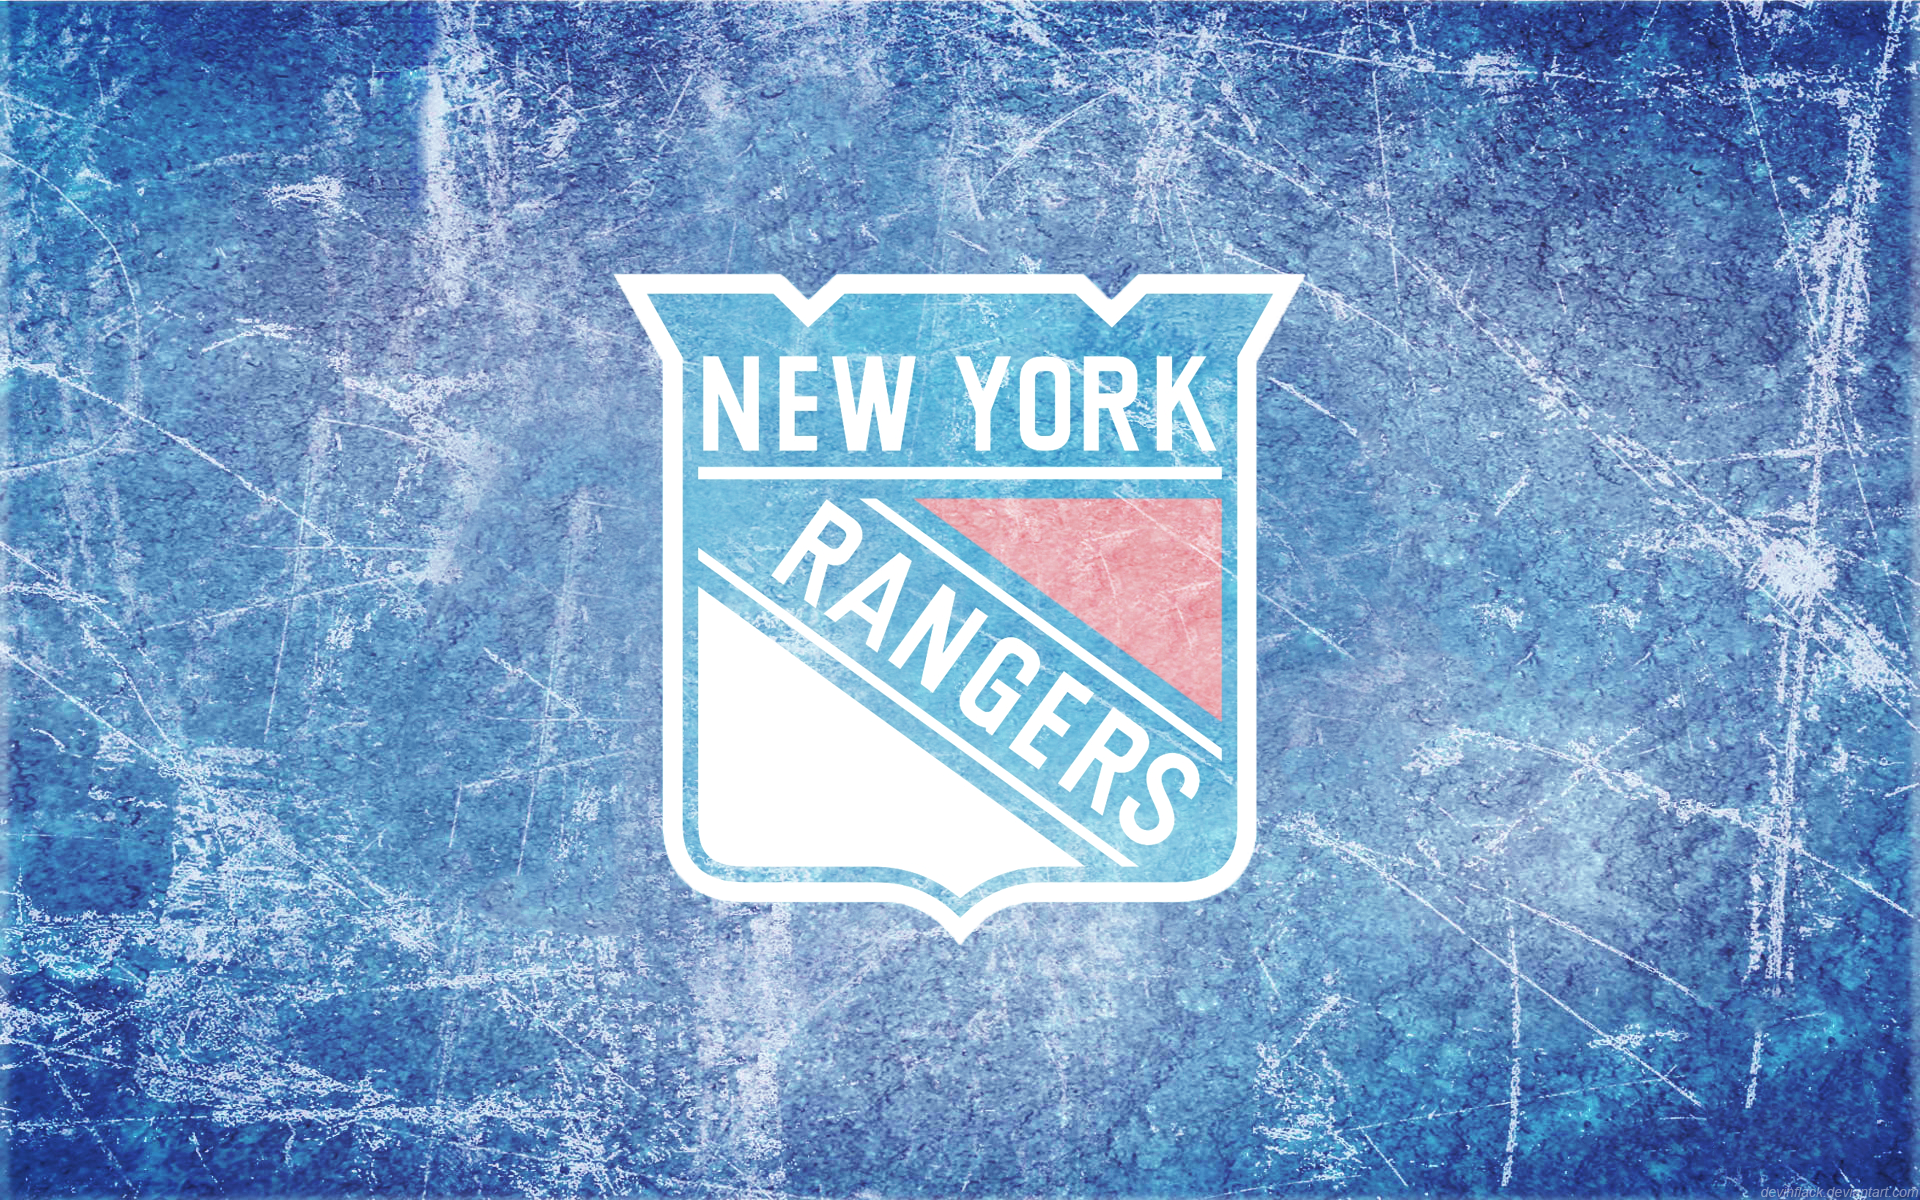 Background of the day New York Rangers New York Rangers wallpapers 1920x1200